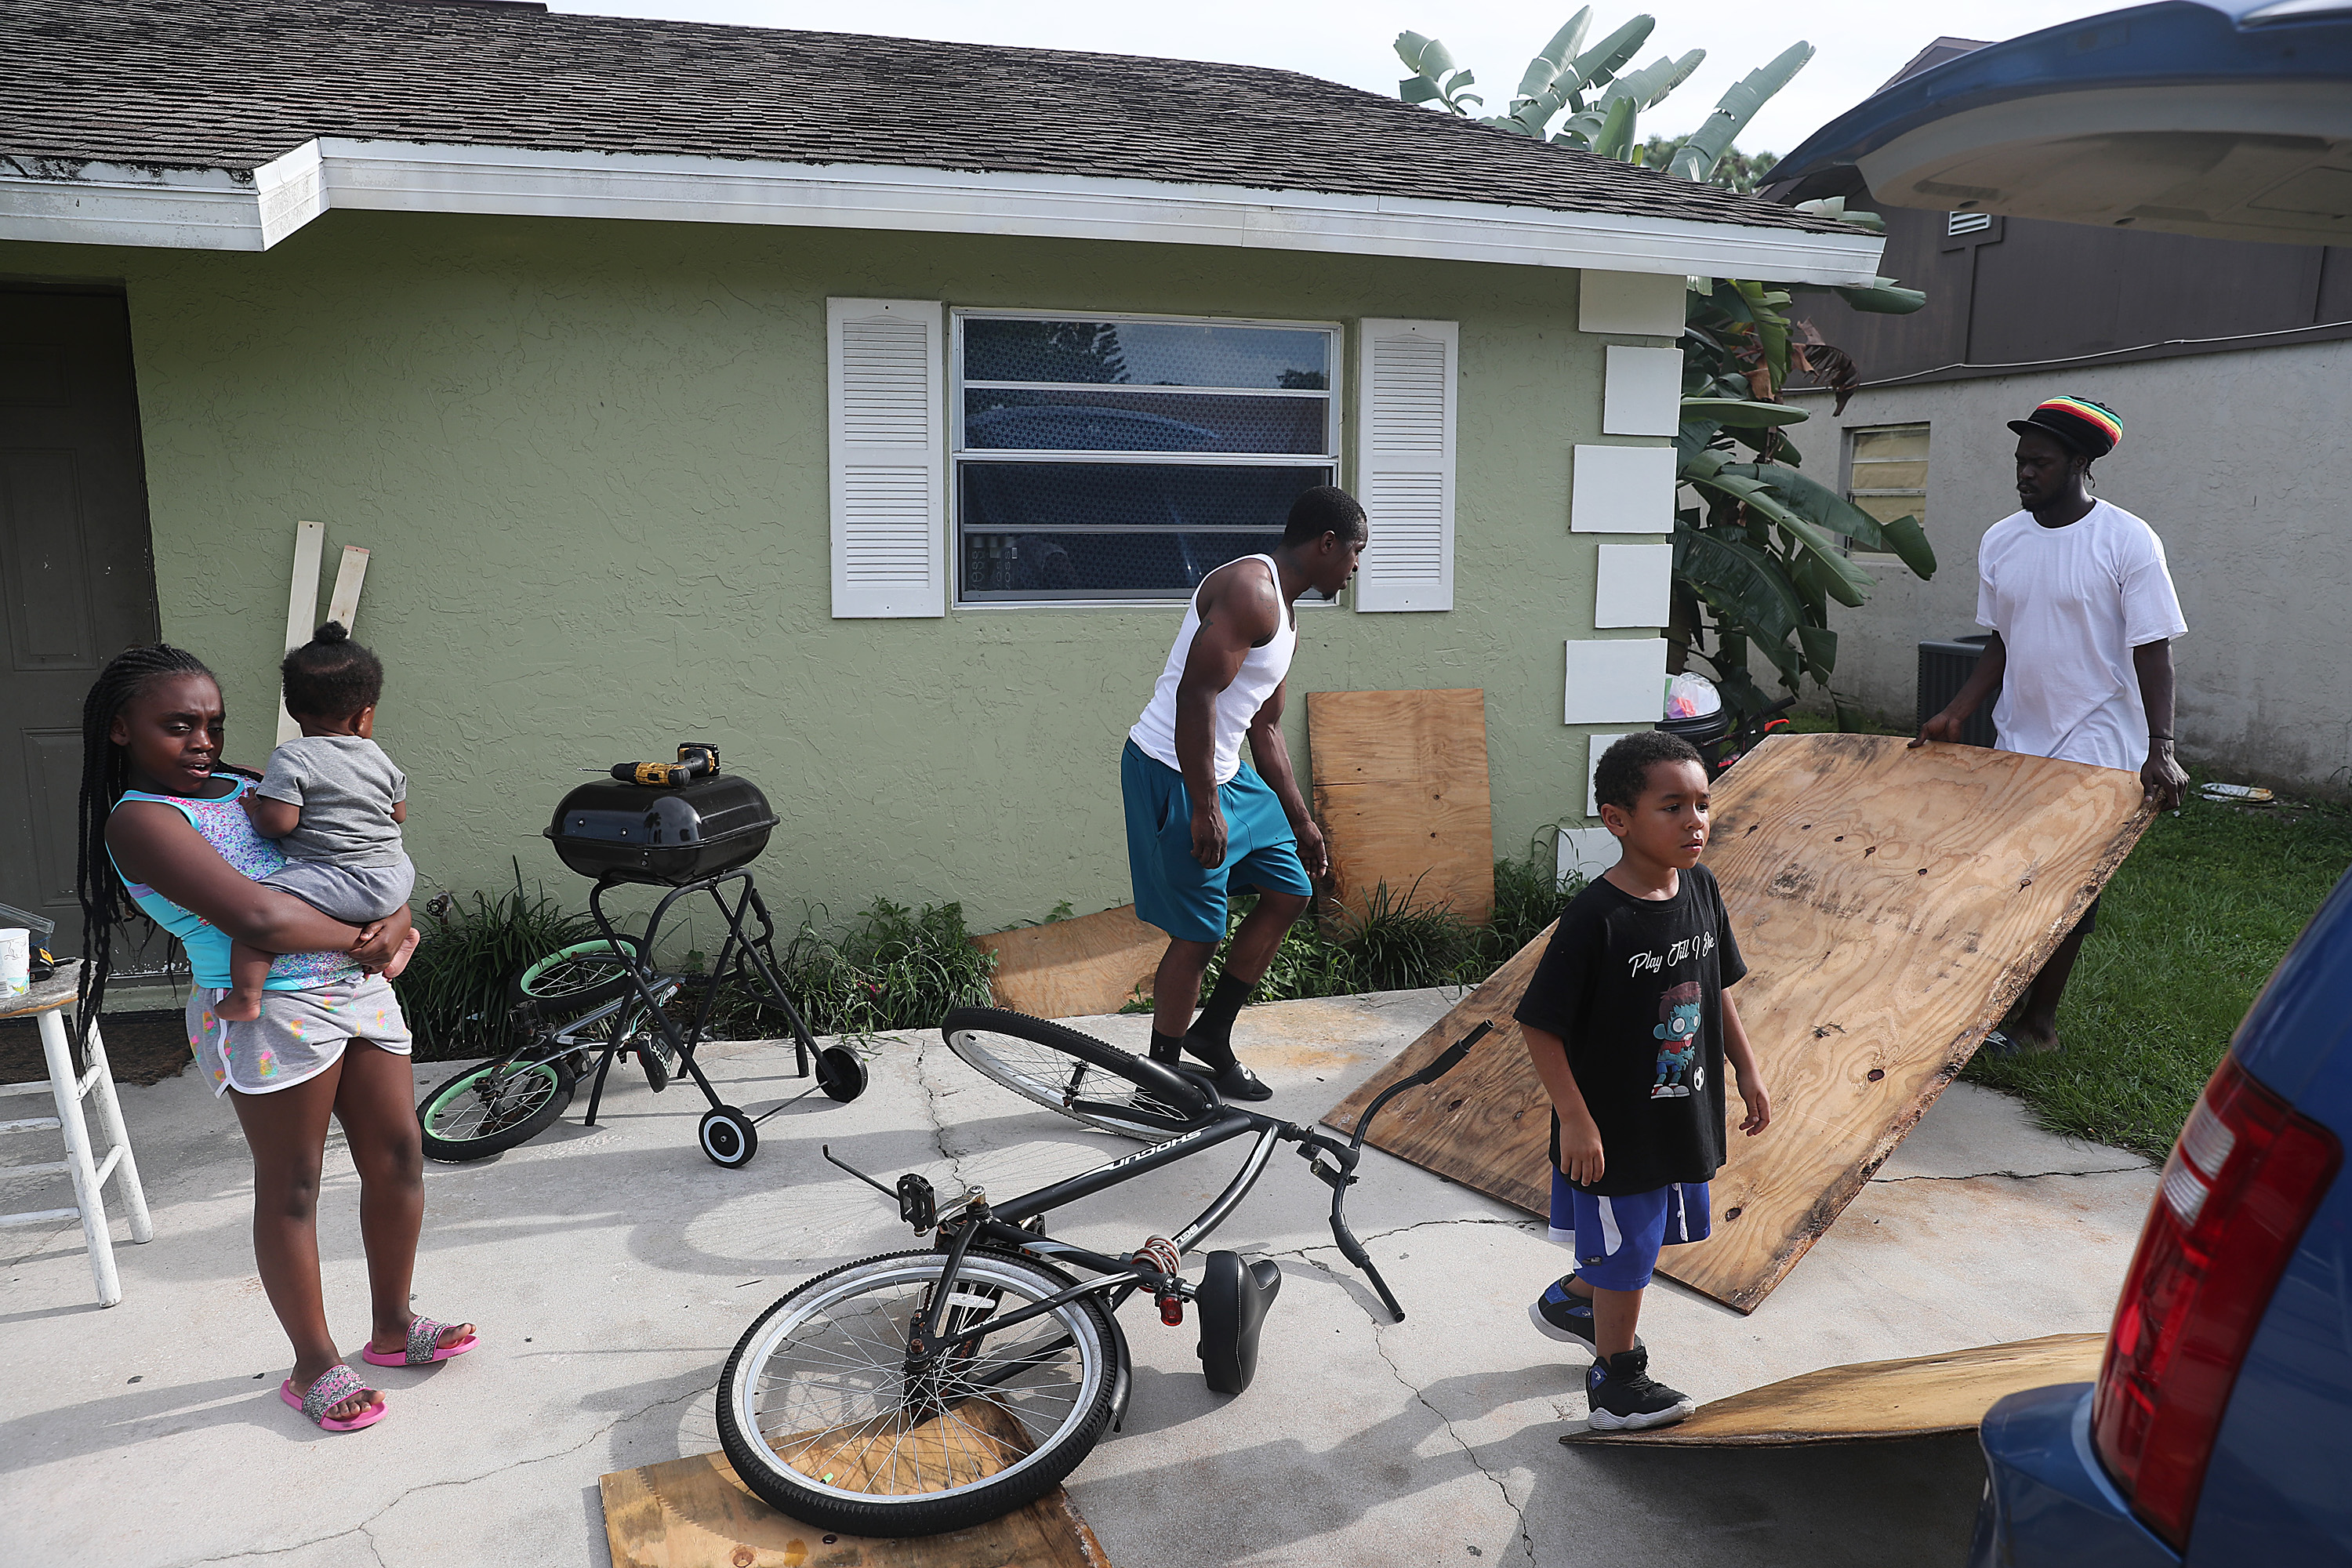 Langdon Bryant (R) and Marcus McClain (C) prepare to hang plywood over a window as they protect their home just in case Hurricane Dorian hits the area on September 01, 2019 in Port Salerno, Florida. (Joe Raedle/Getty Images)